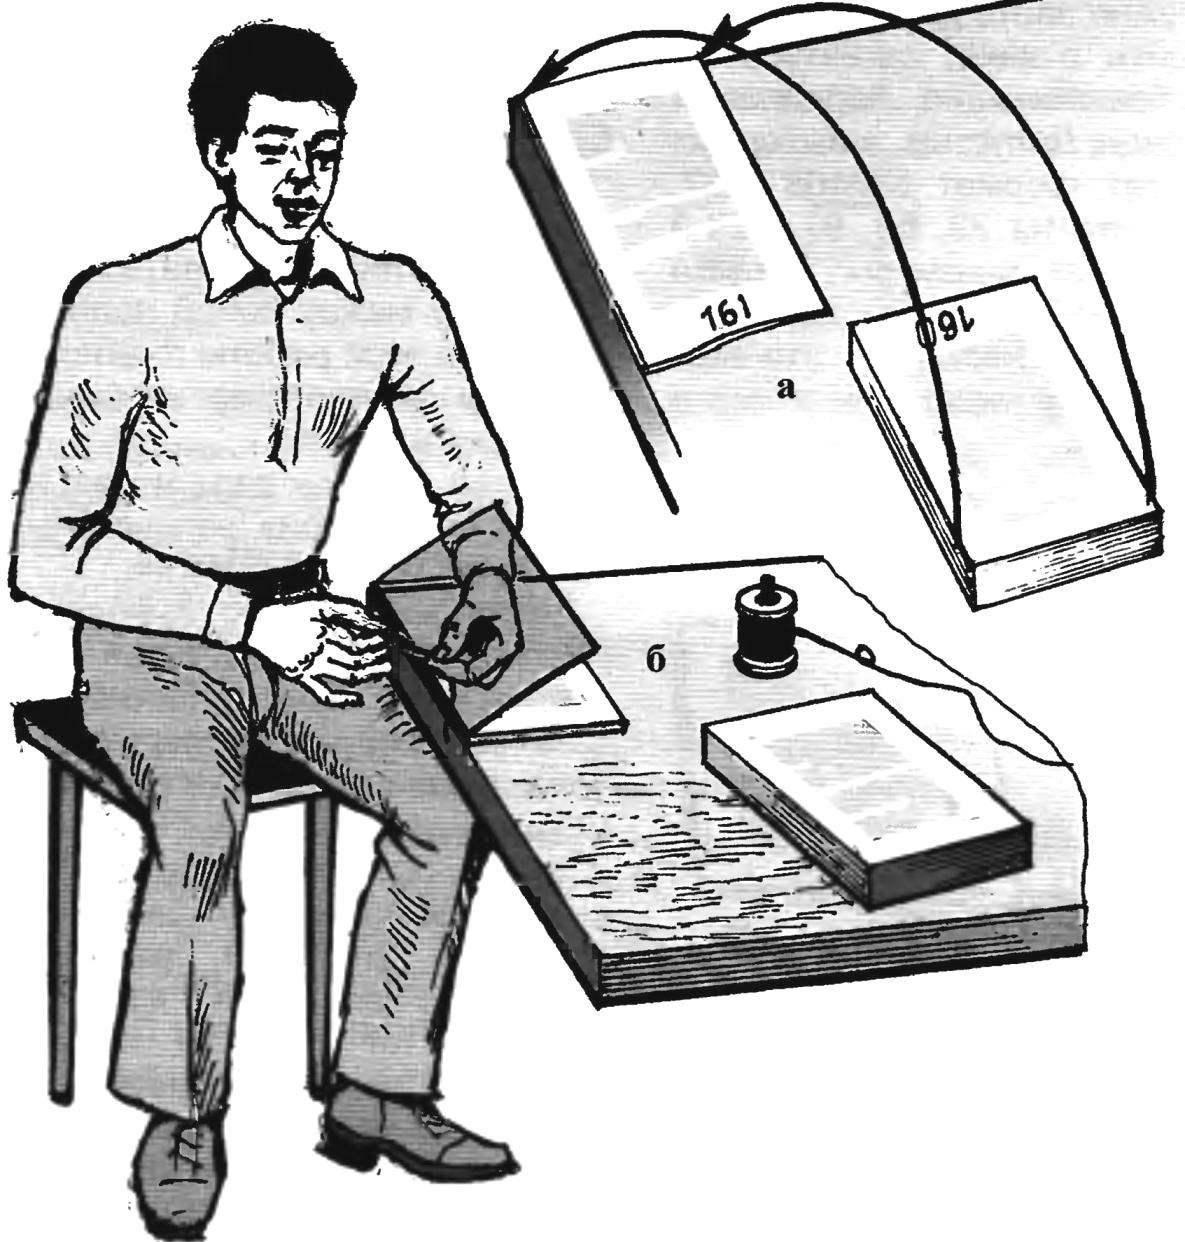 Fig. 4. Sewing notebooks